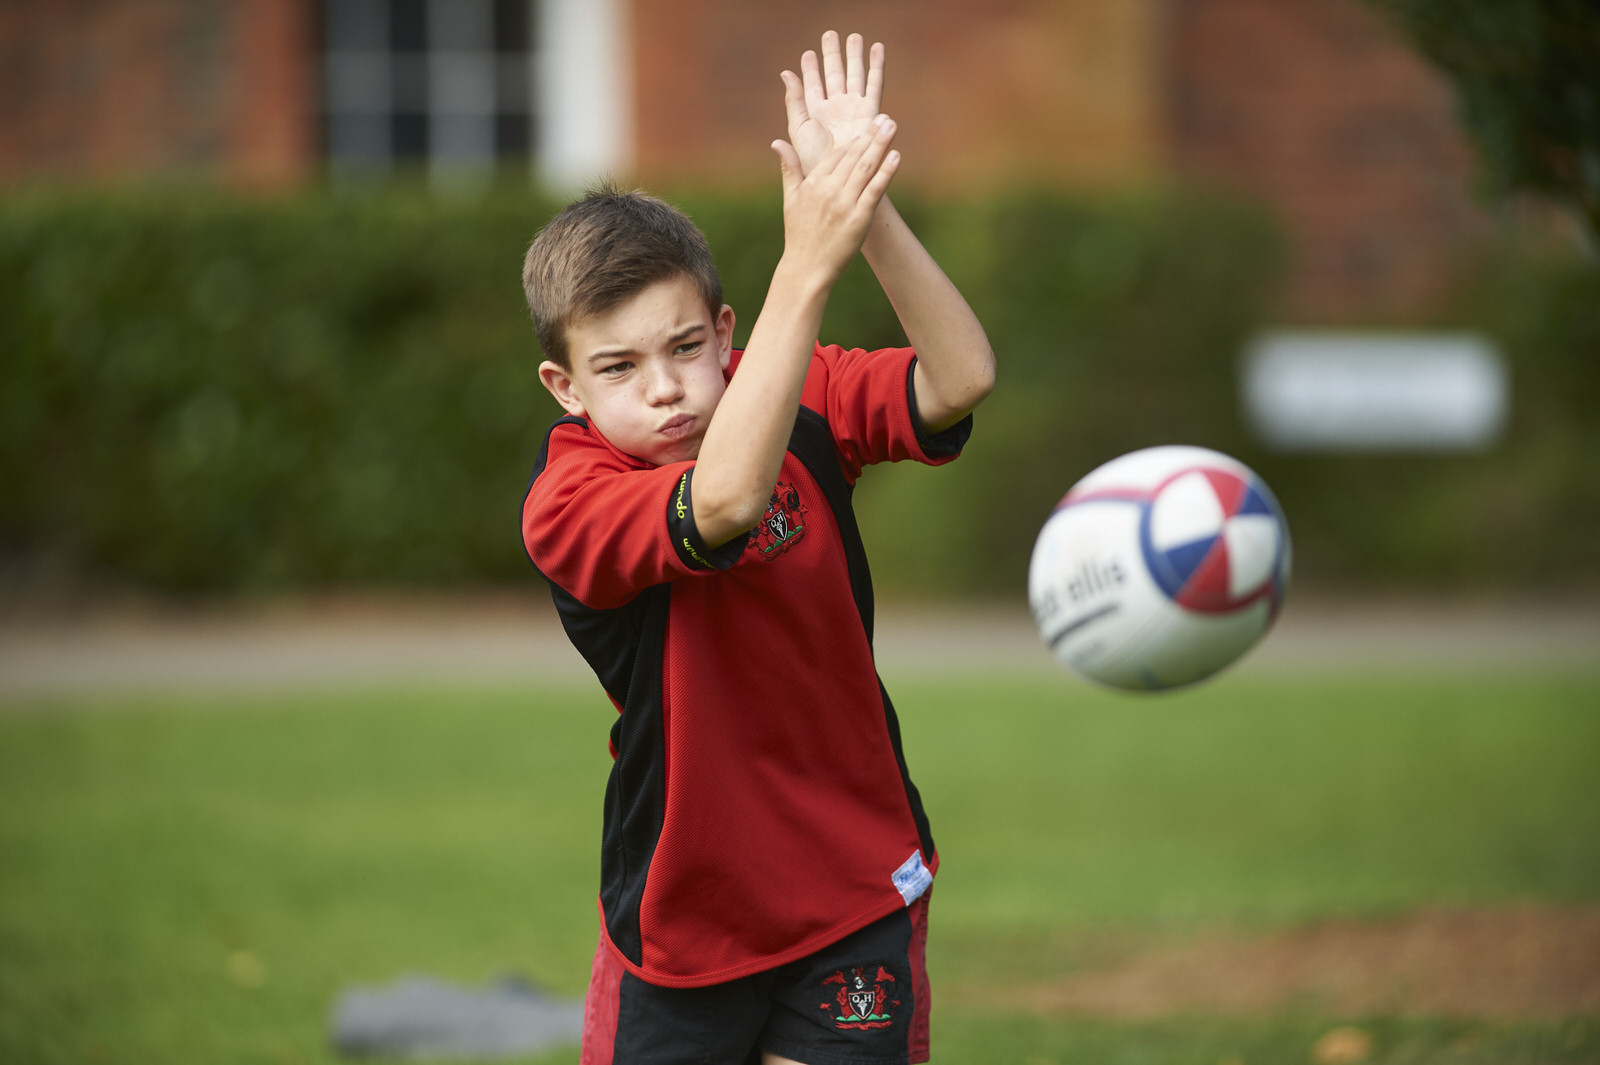 The Role of Sport in Developing the Whole Child